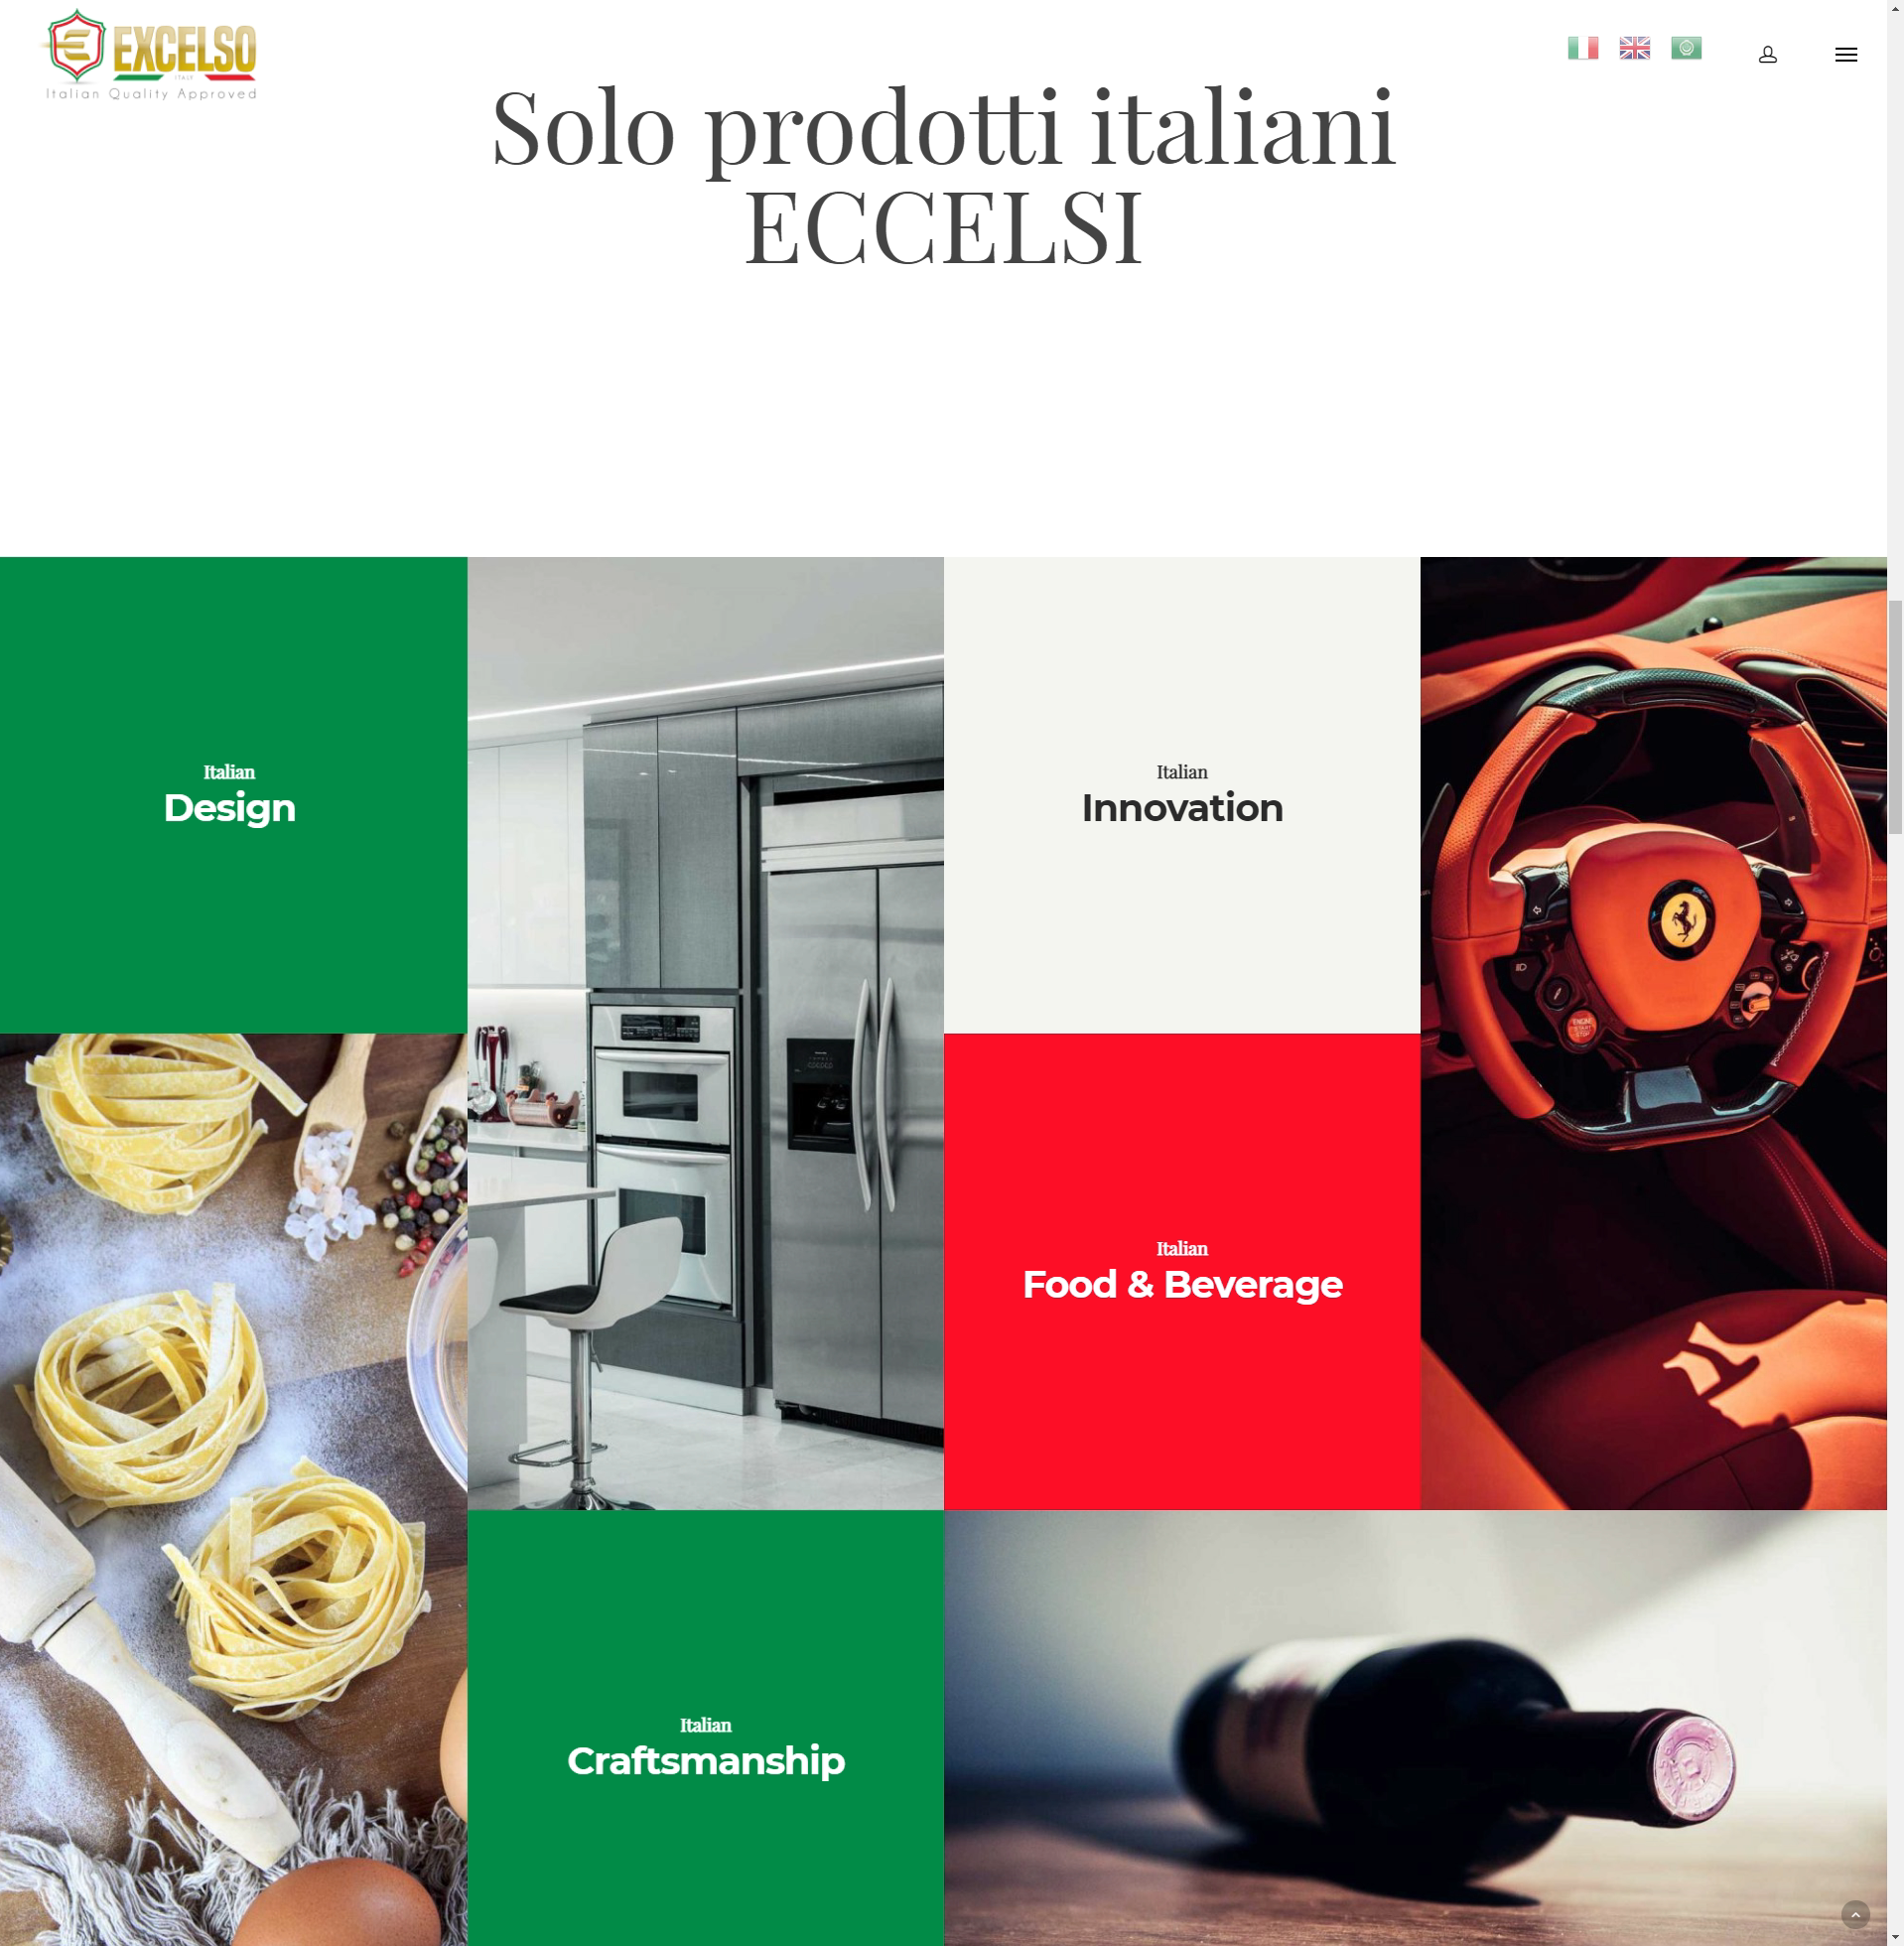 EXCELSOITALY_website (2)